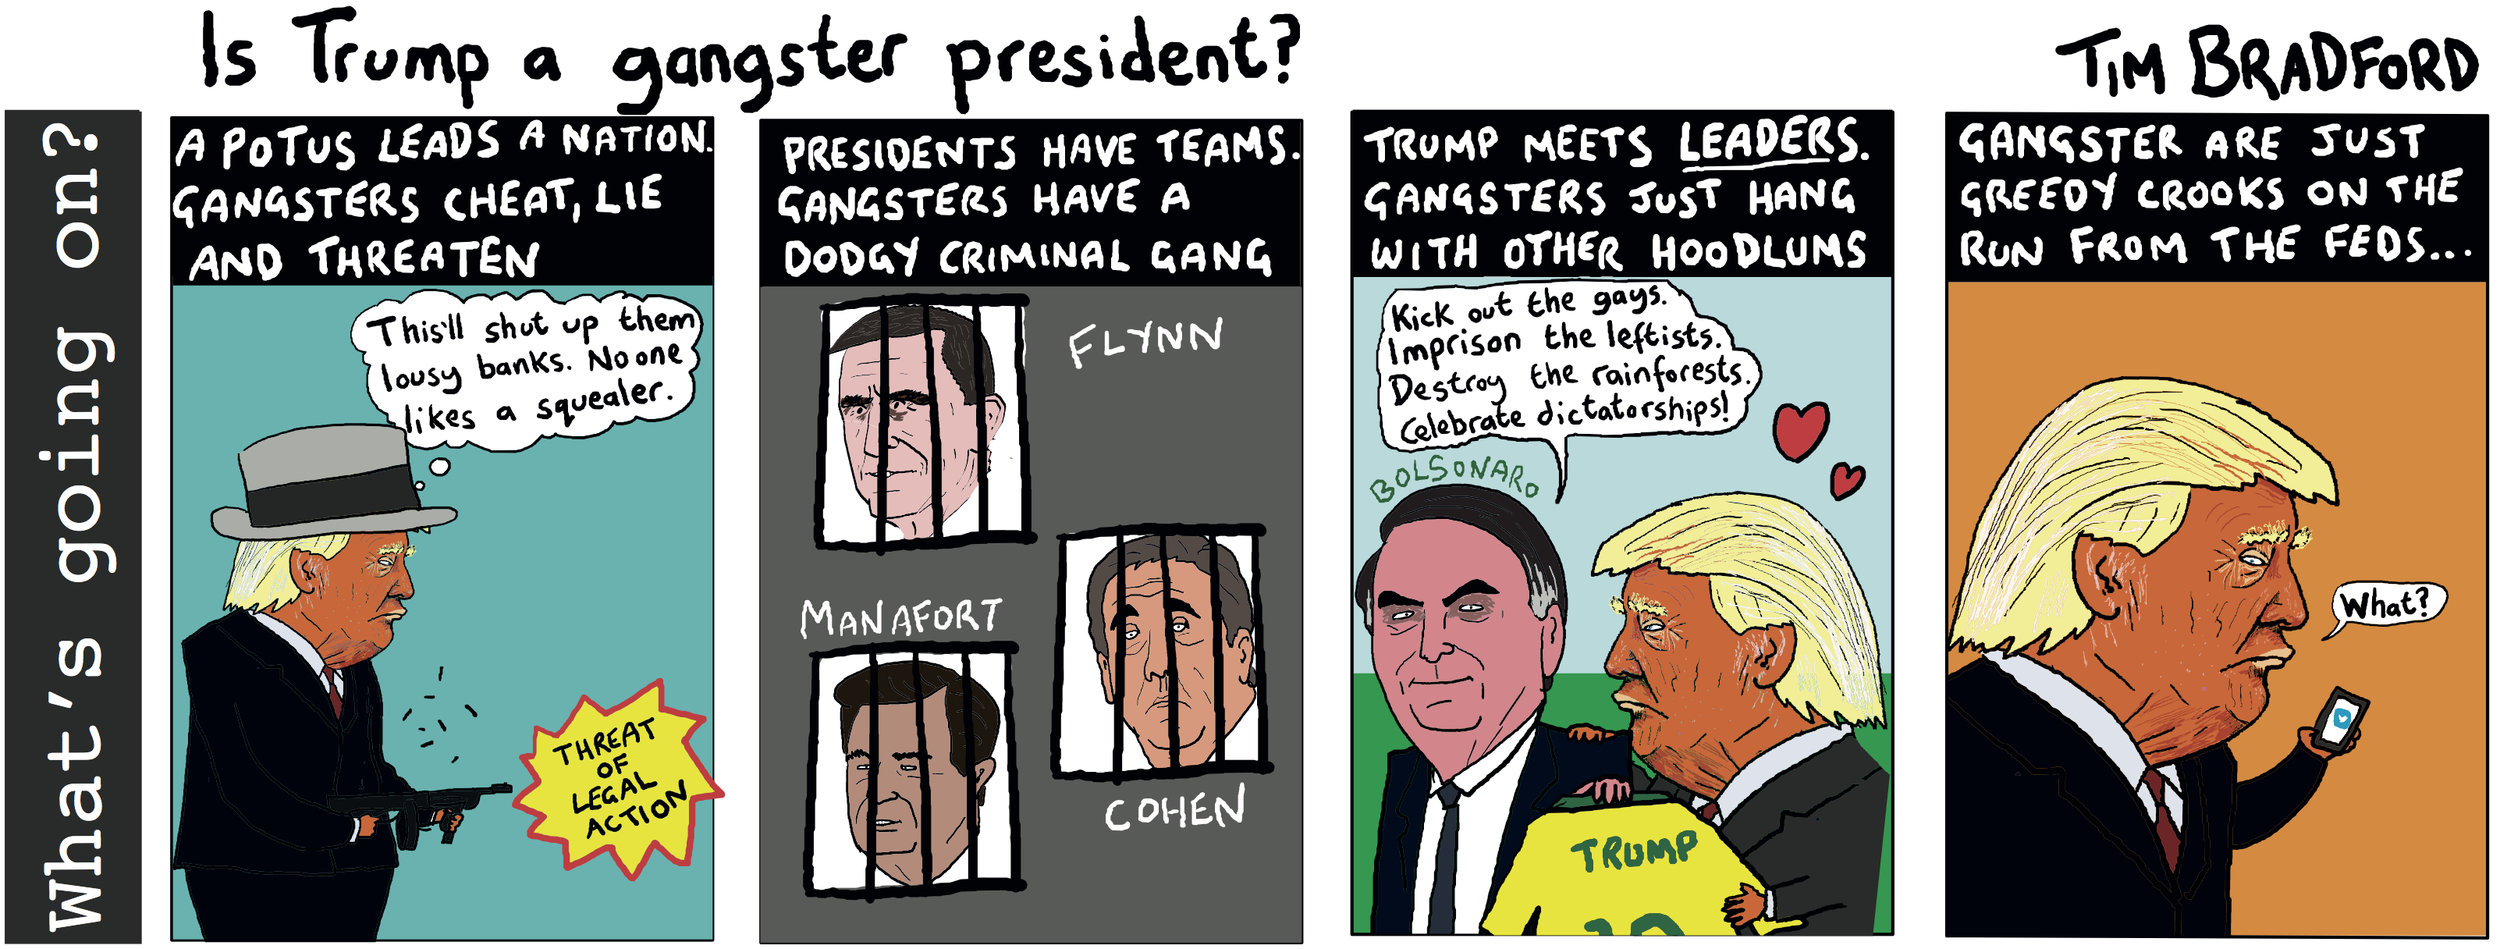 Is Trump a gangster president? - 01/05/2019